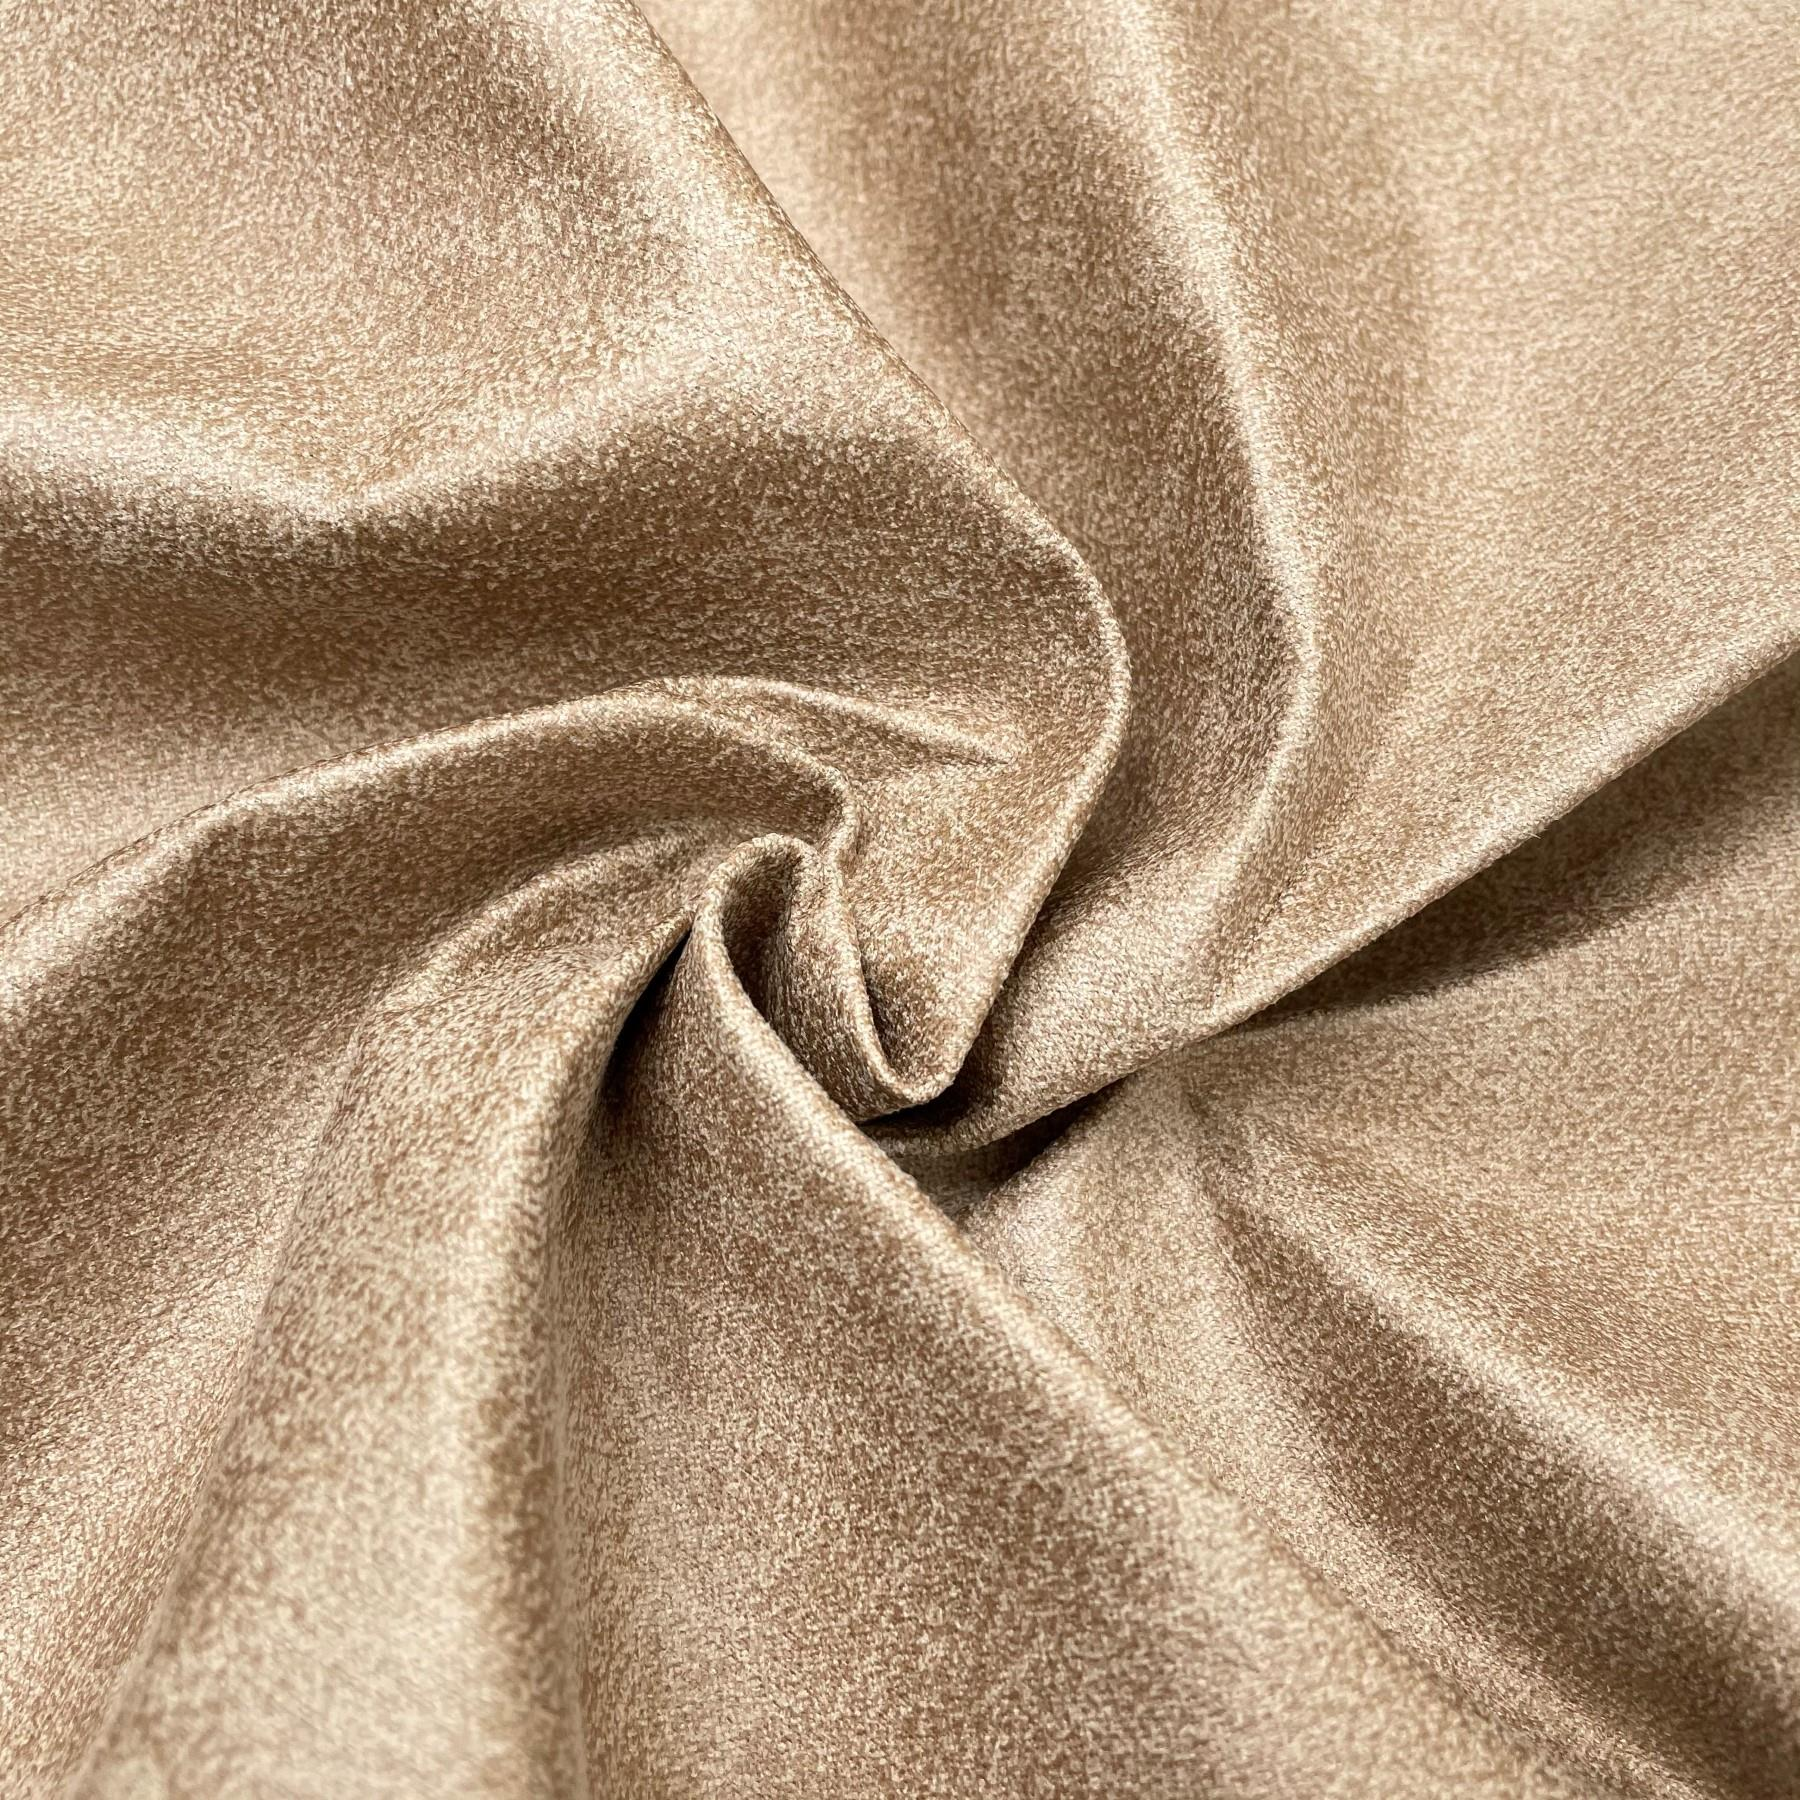 thumbnail 8 - AGED BROWN DISTRESSED ANTIQUED SUEDE FAUX LEATHER LEATHERETTE UPHOLSTERY FABRIC